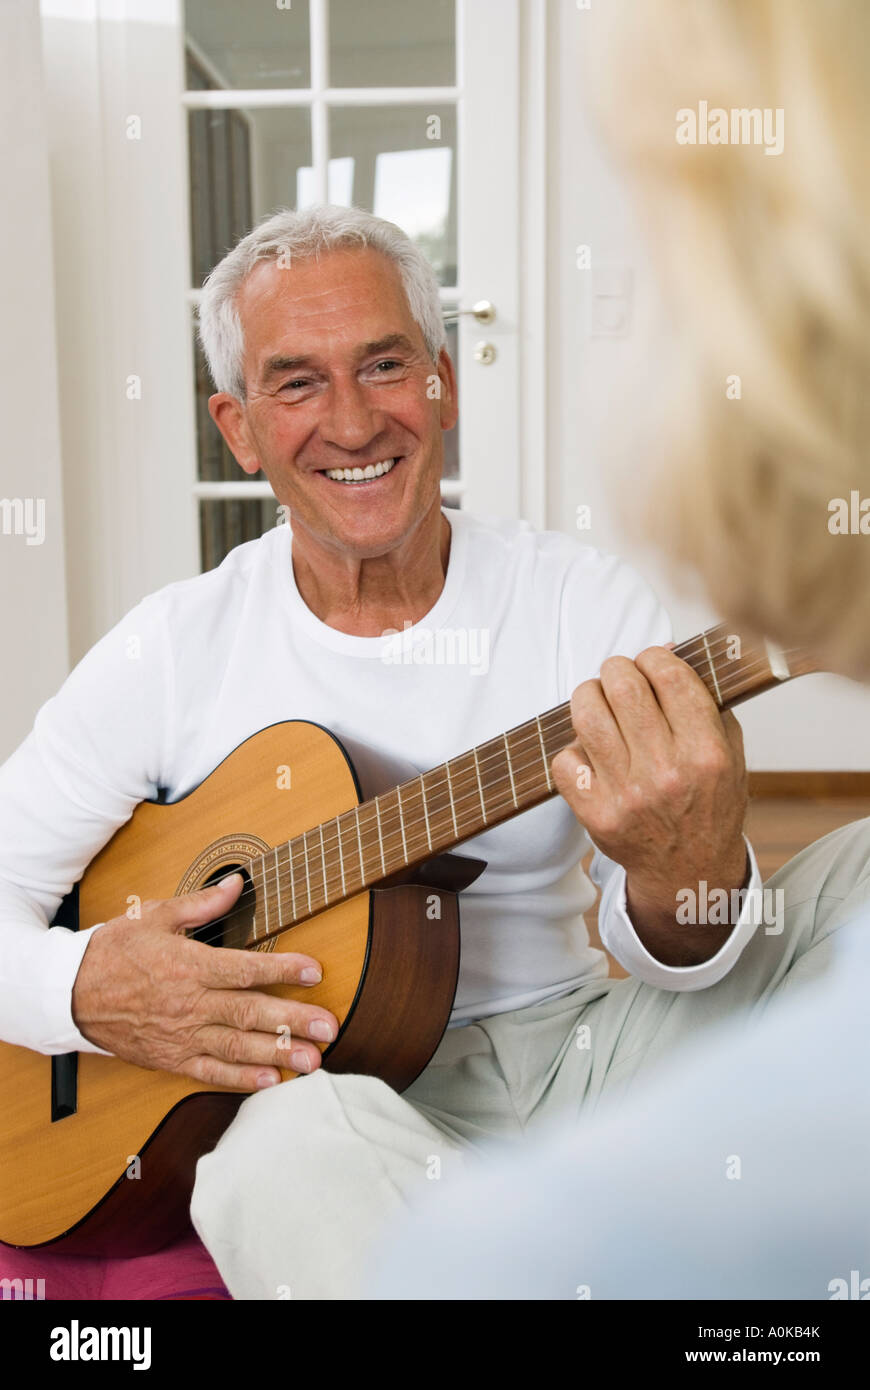 smiling mature man looking tenderly at his wife while playing guitar - Stock Image